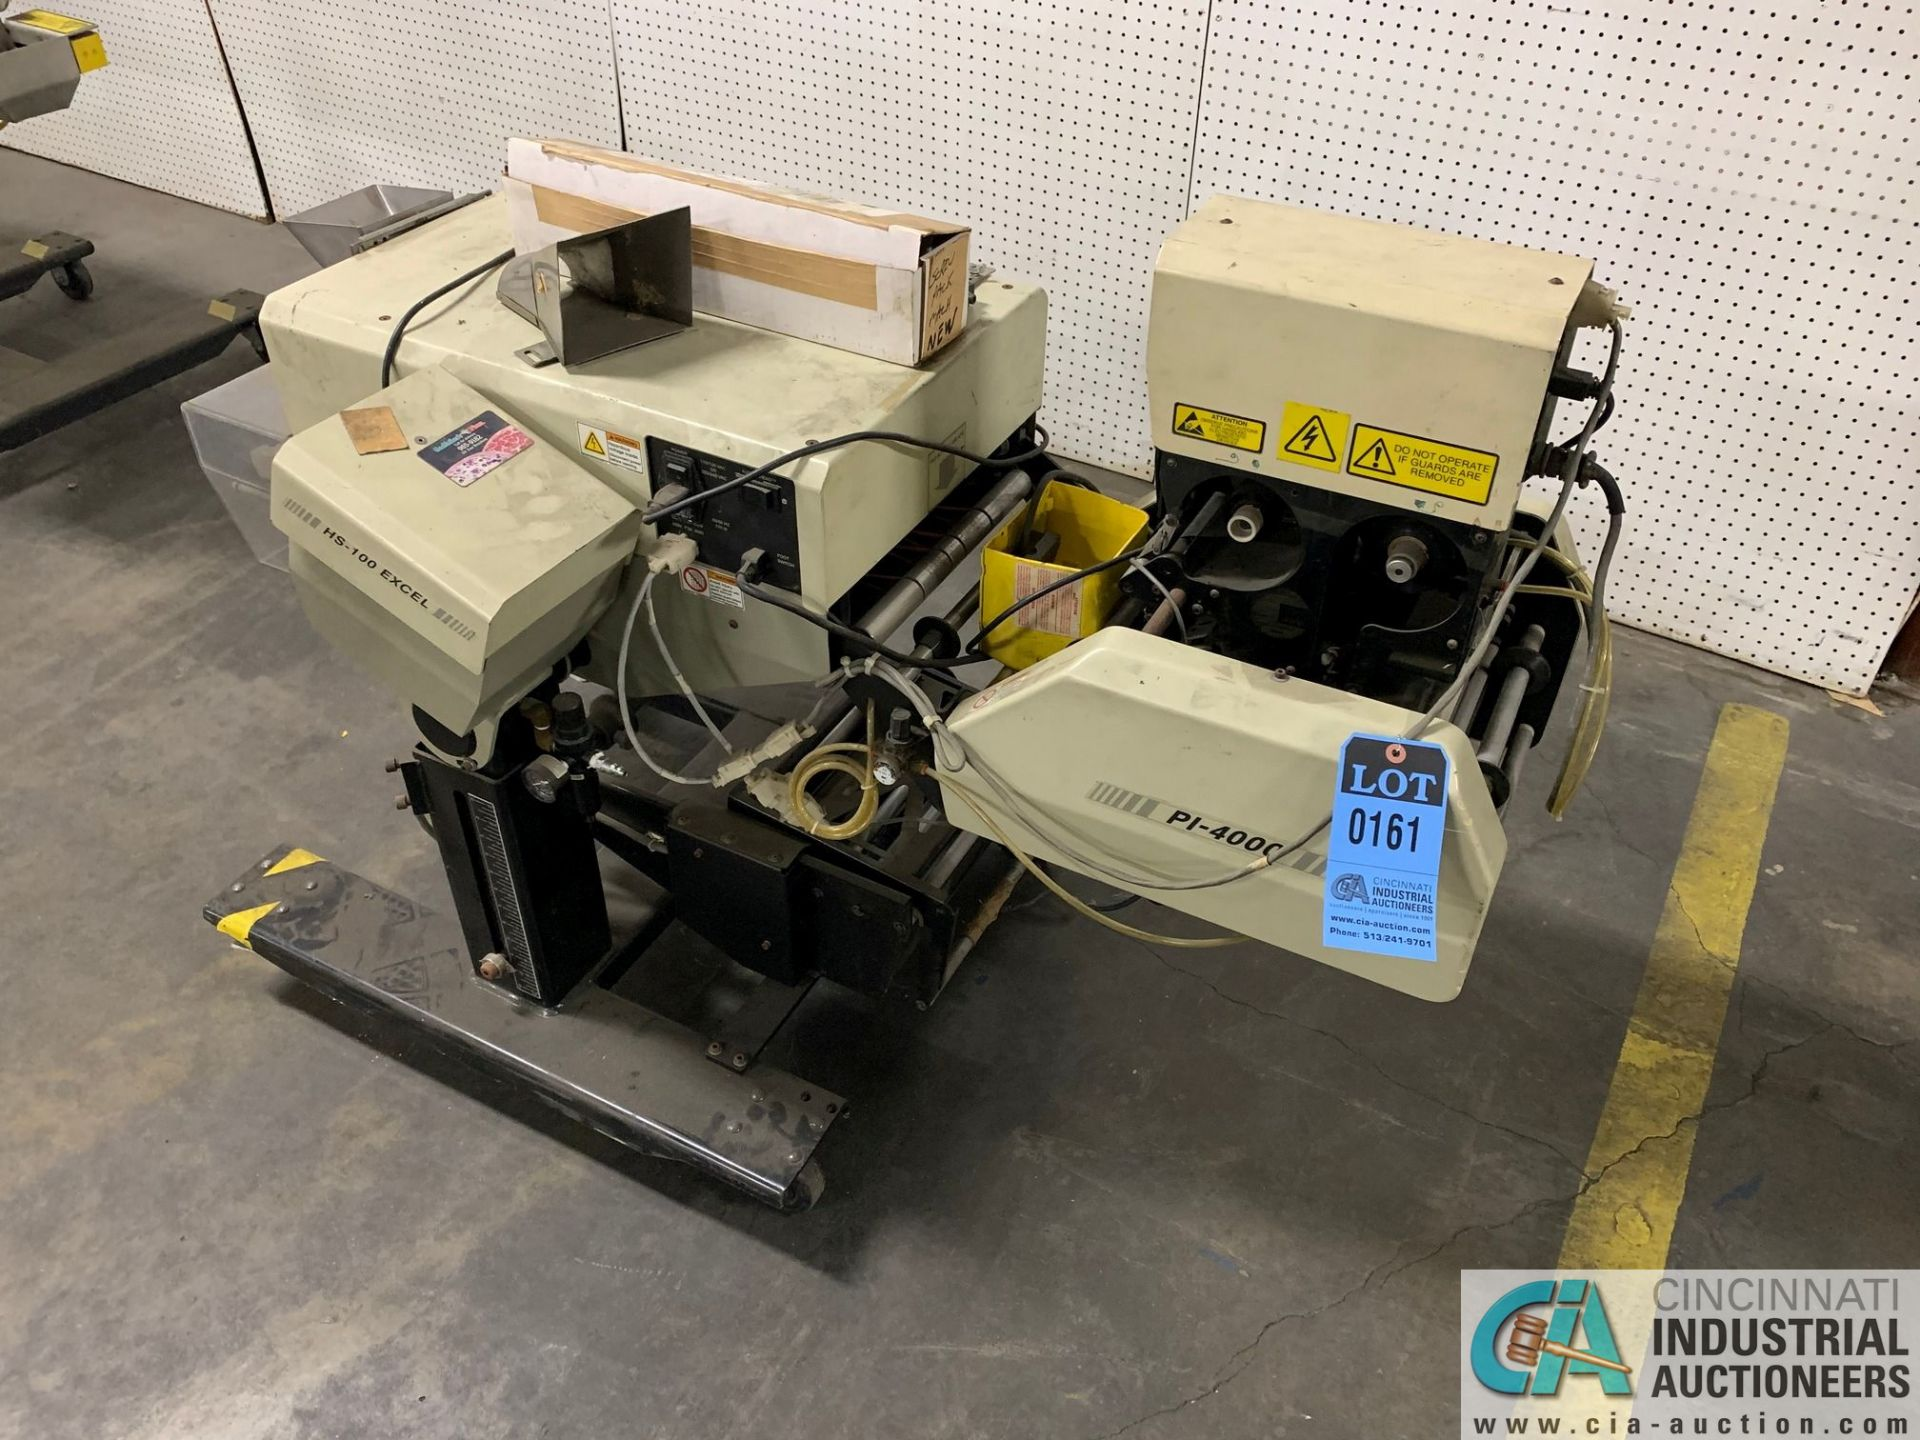 AUTOBAG MODEL HS-100 EXCEL POLY BAGGING MACHINE; S/N 2072896019, WITH P1-4000 AUTO LABEL MACHINE ( - Image 5 of 7